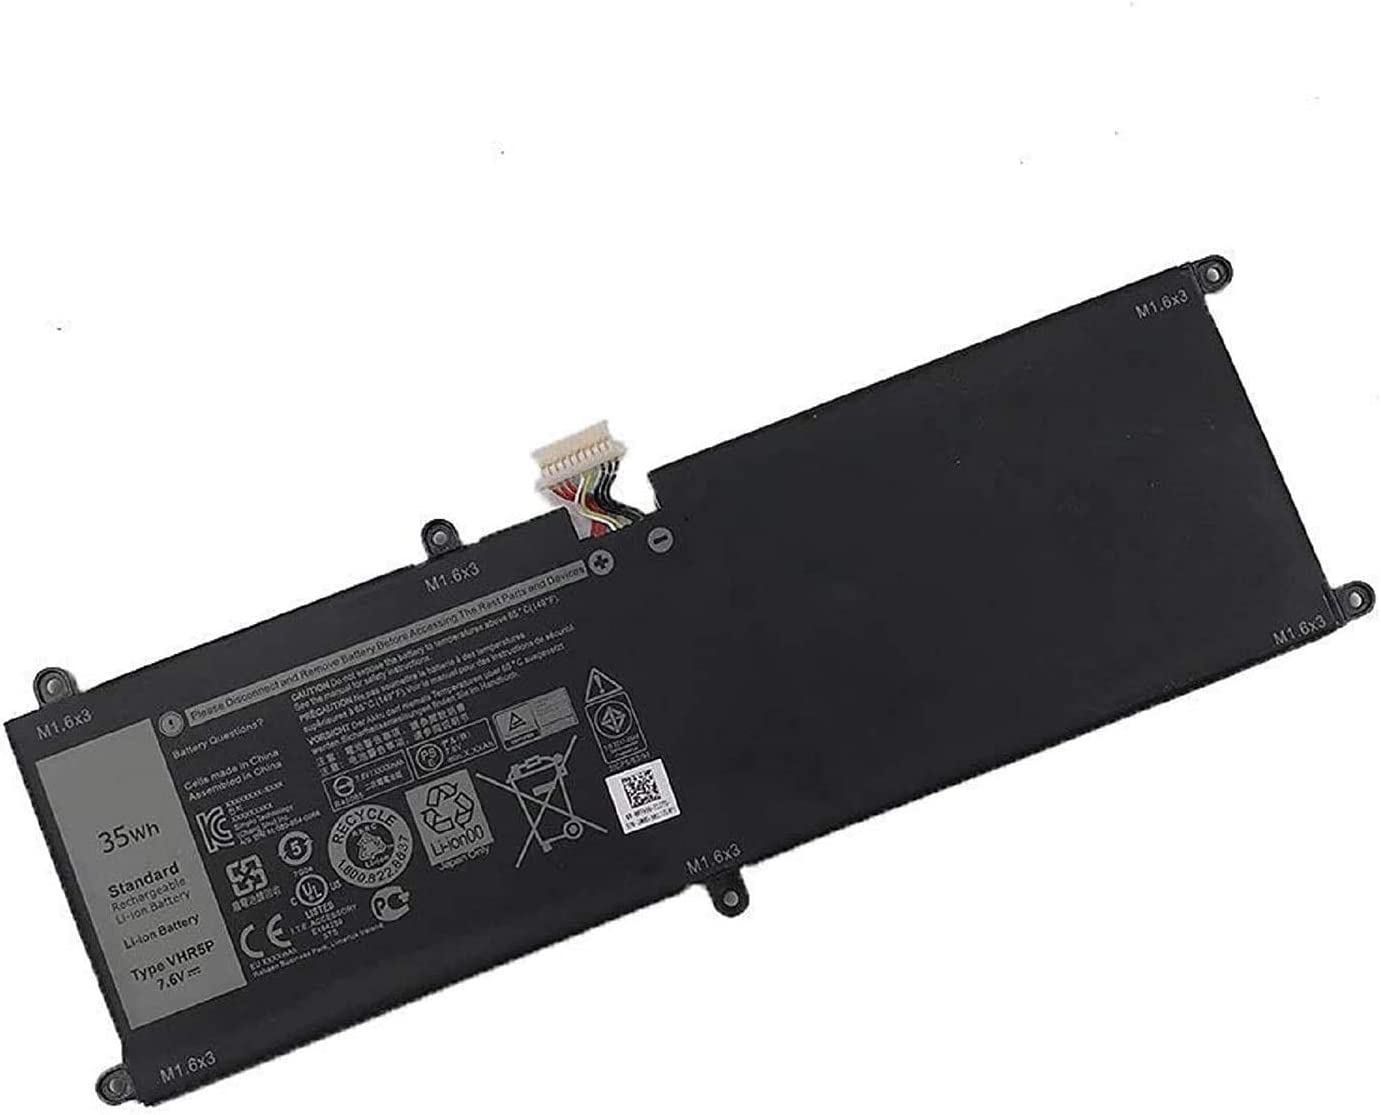 TanDirect New VHR5P 35Wh Replacement Laptop Battery Compatible with Dell Latitude 11 5175 XRHWG RHF3V 0XRHWG Tablet Series